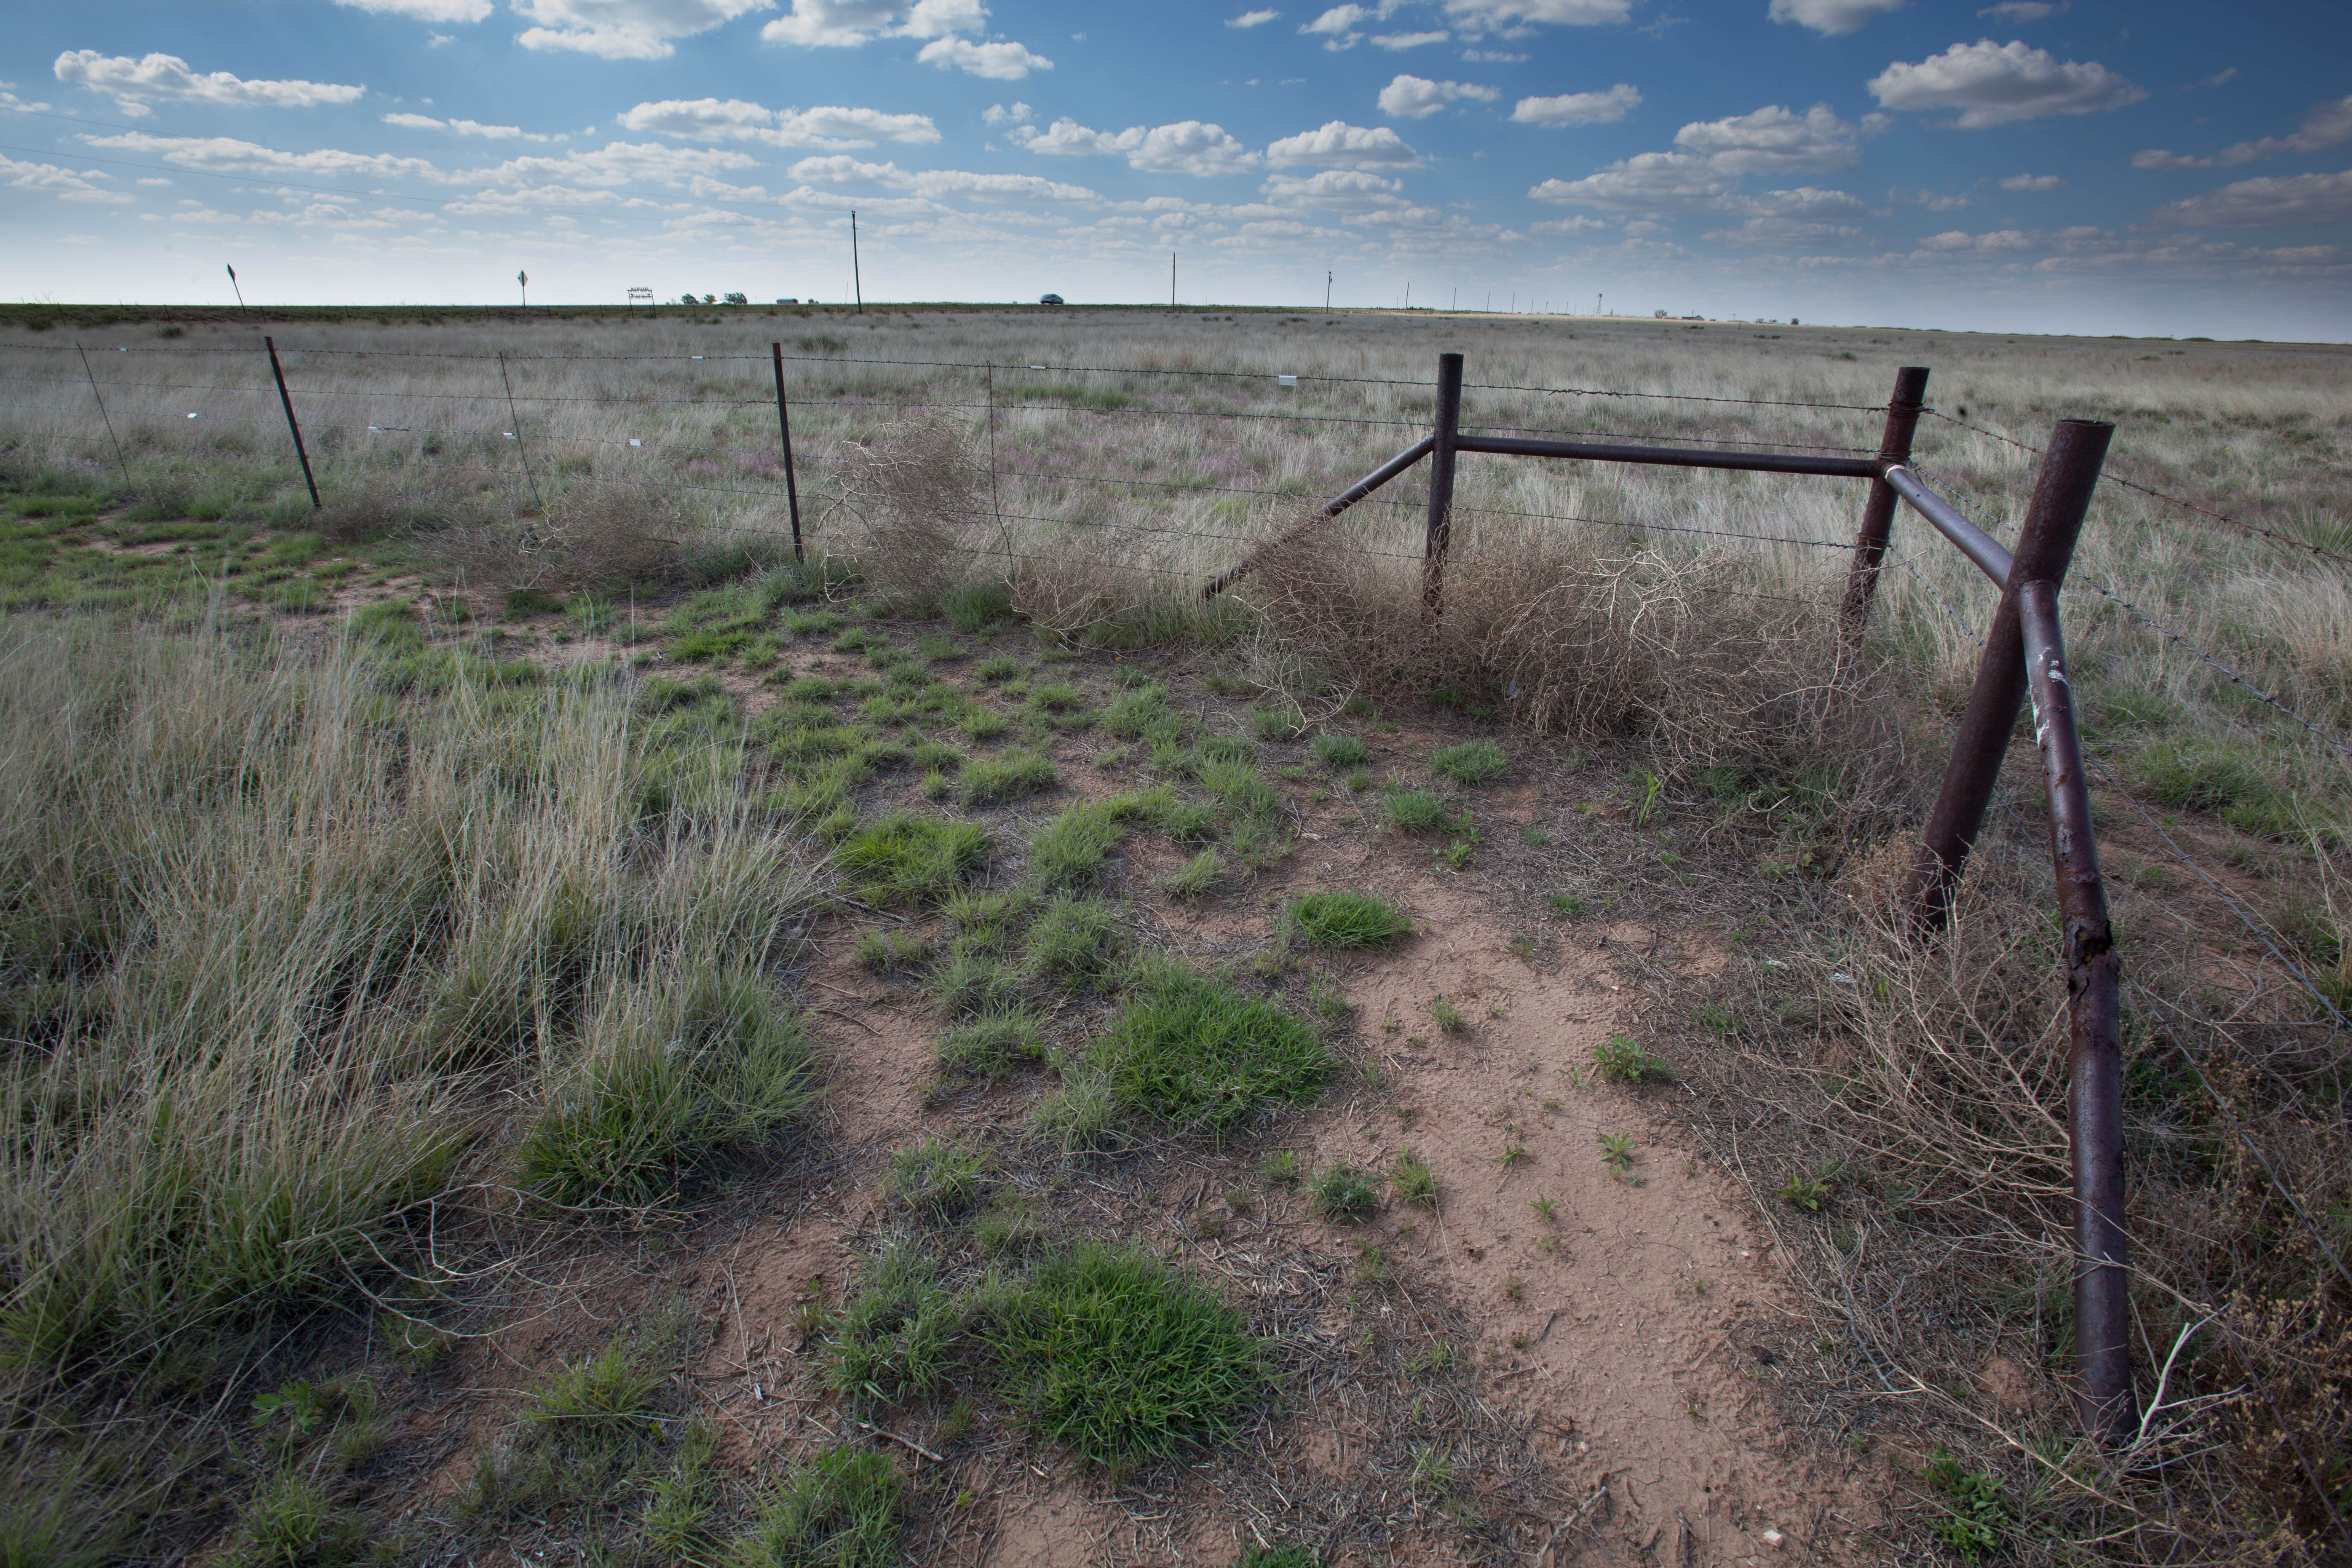 Free picture: desert, fence, scenic, prairie, barbed wire, sky, nature